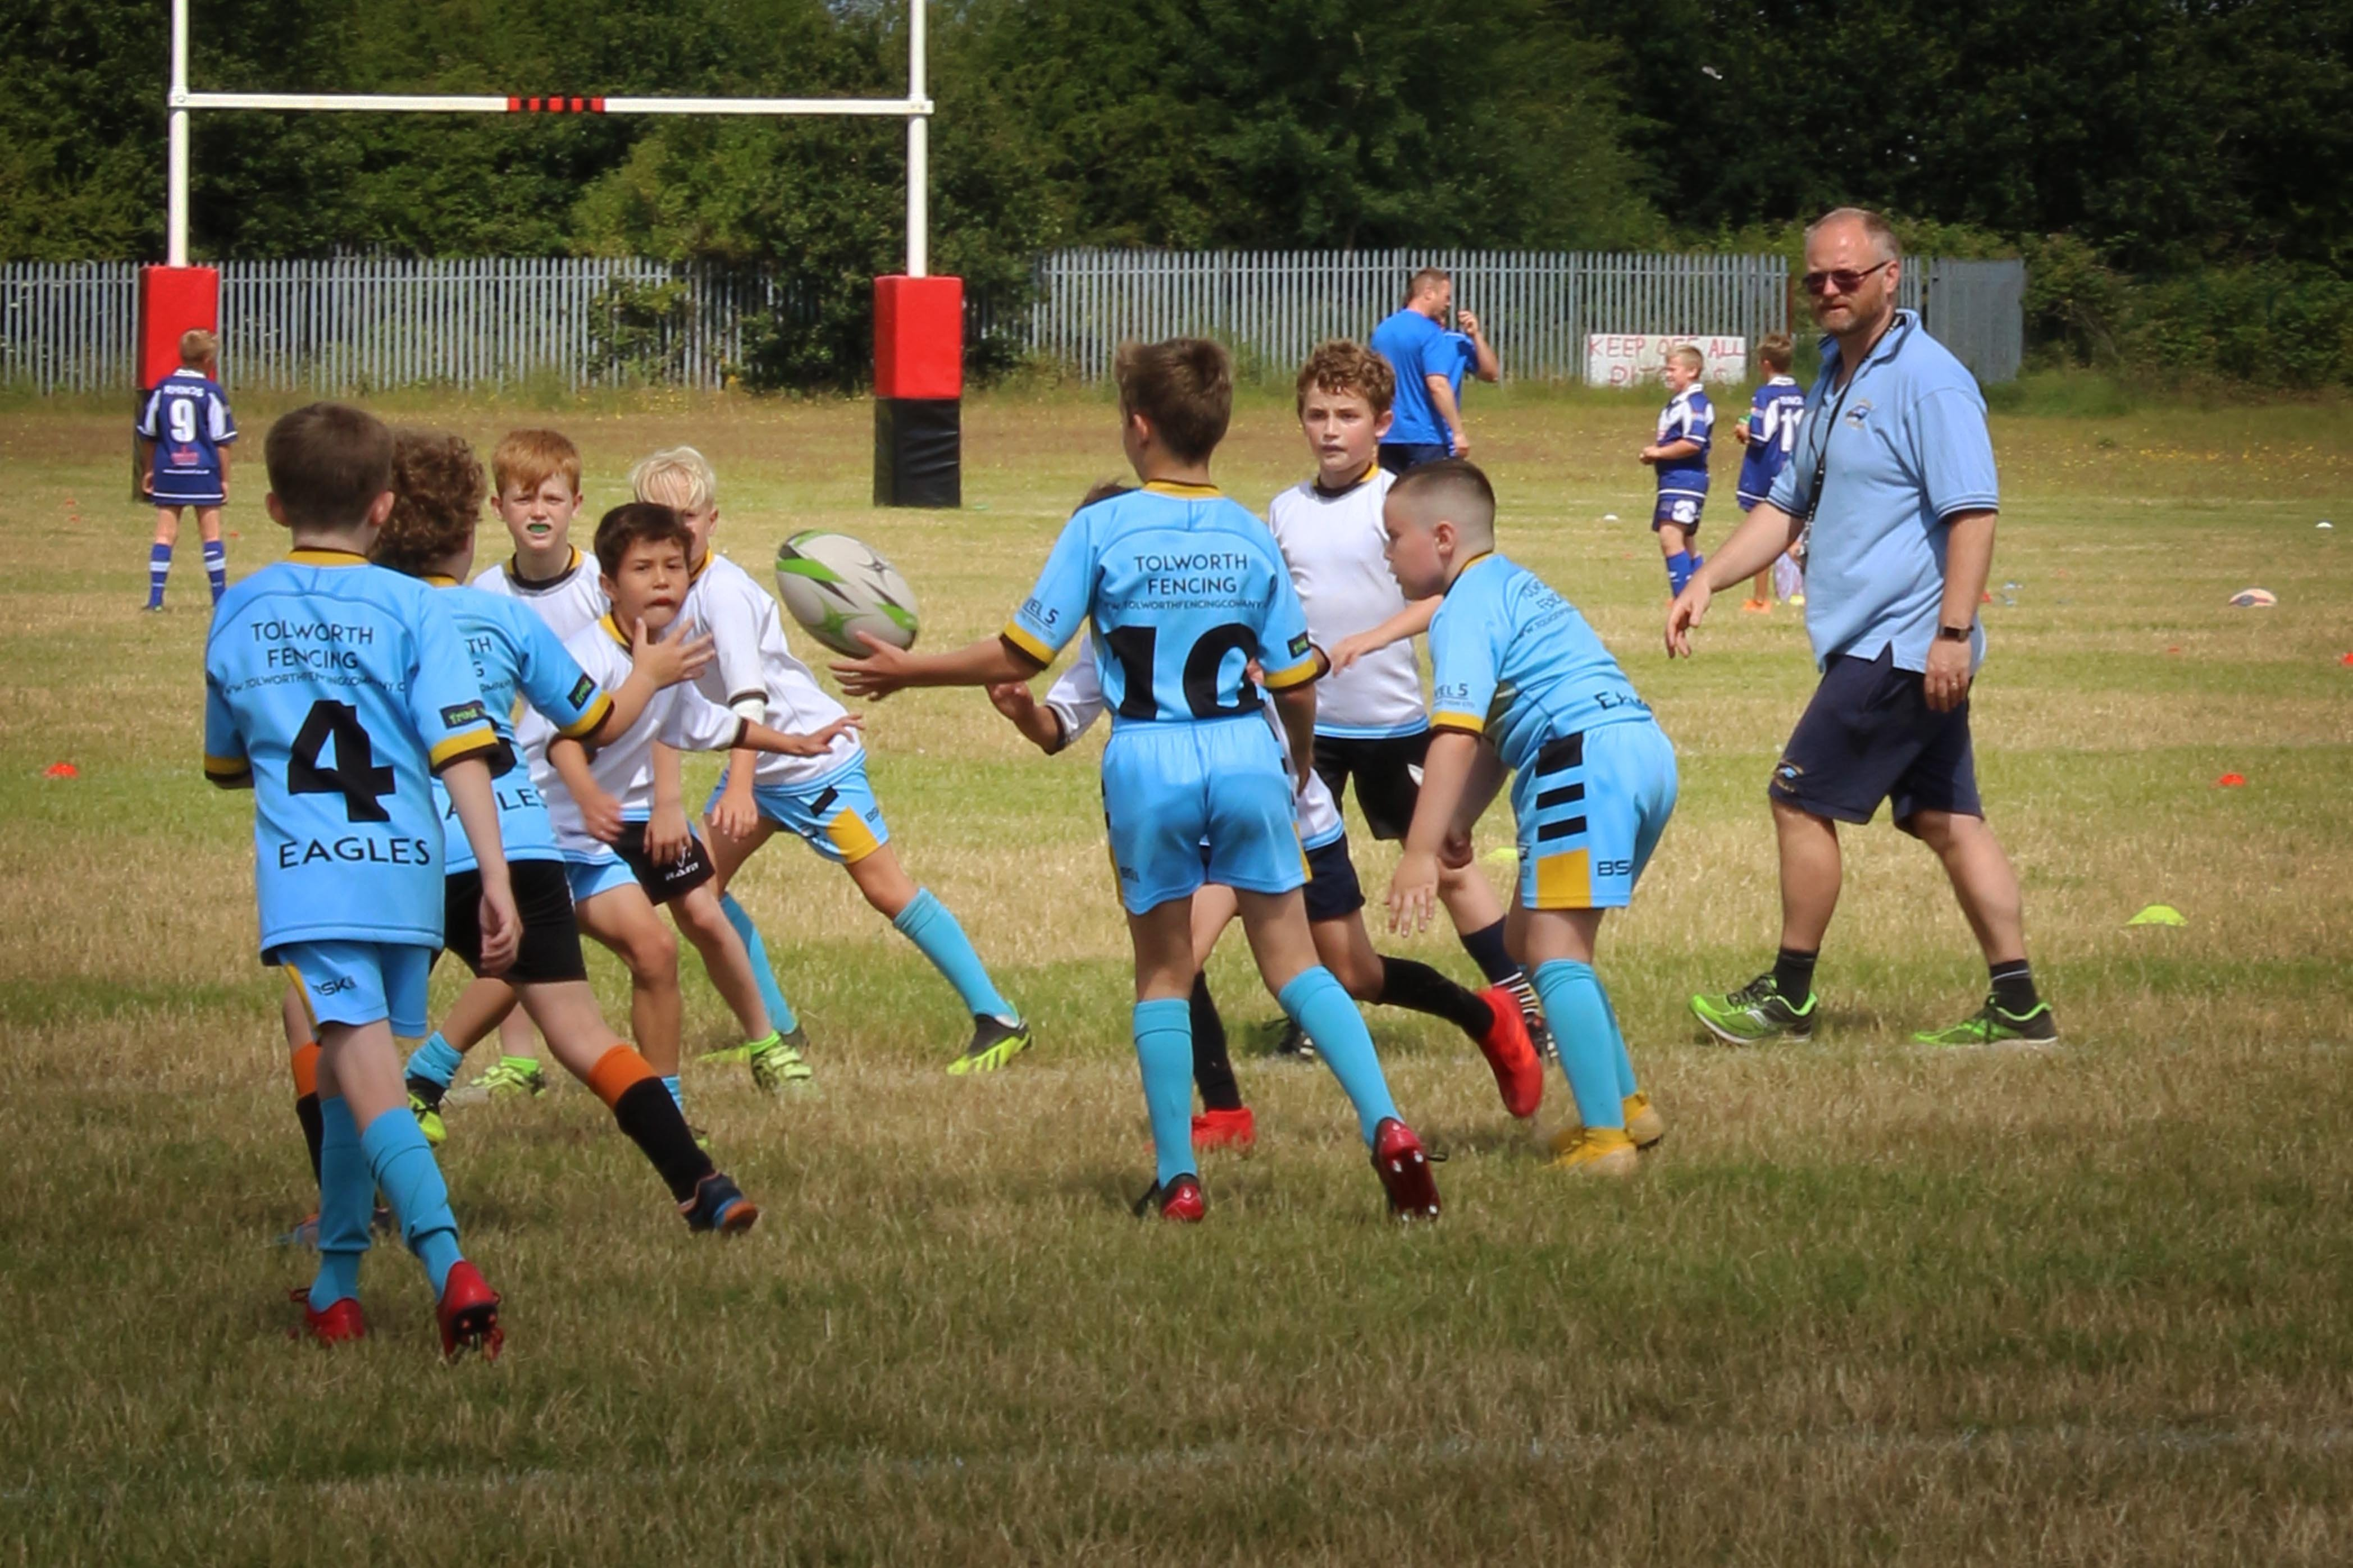 U9s Elmbridge vs Elmbridge 3